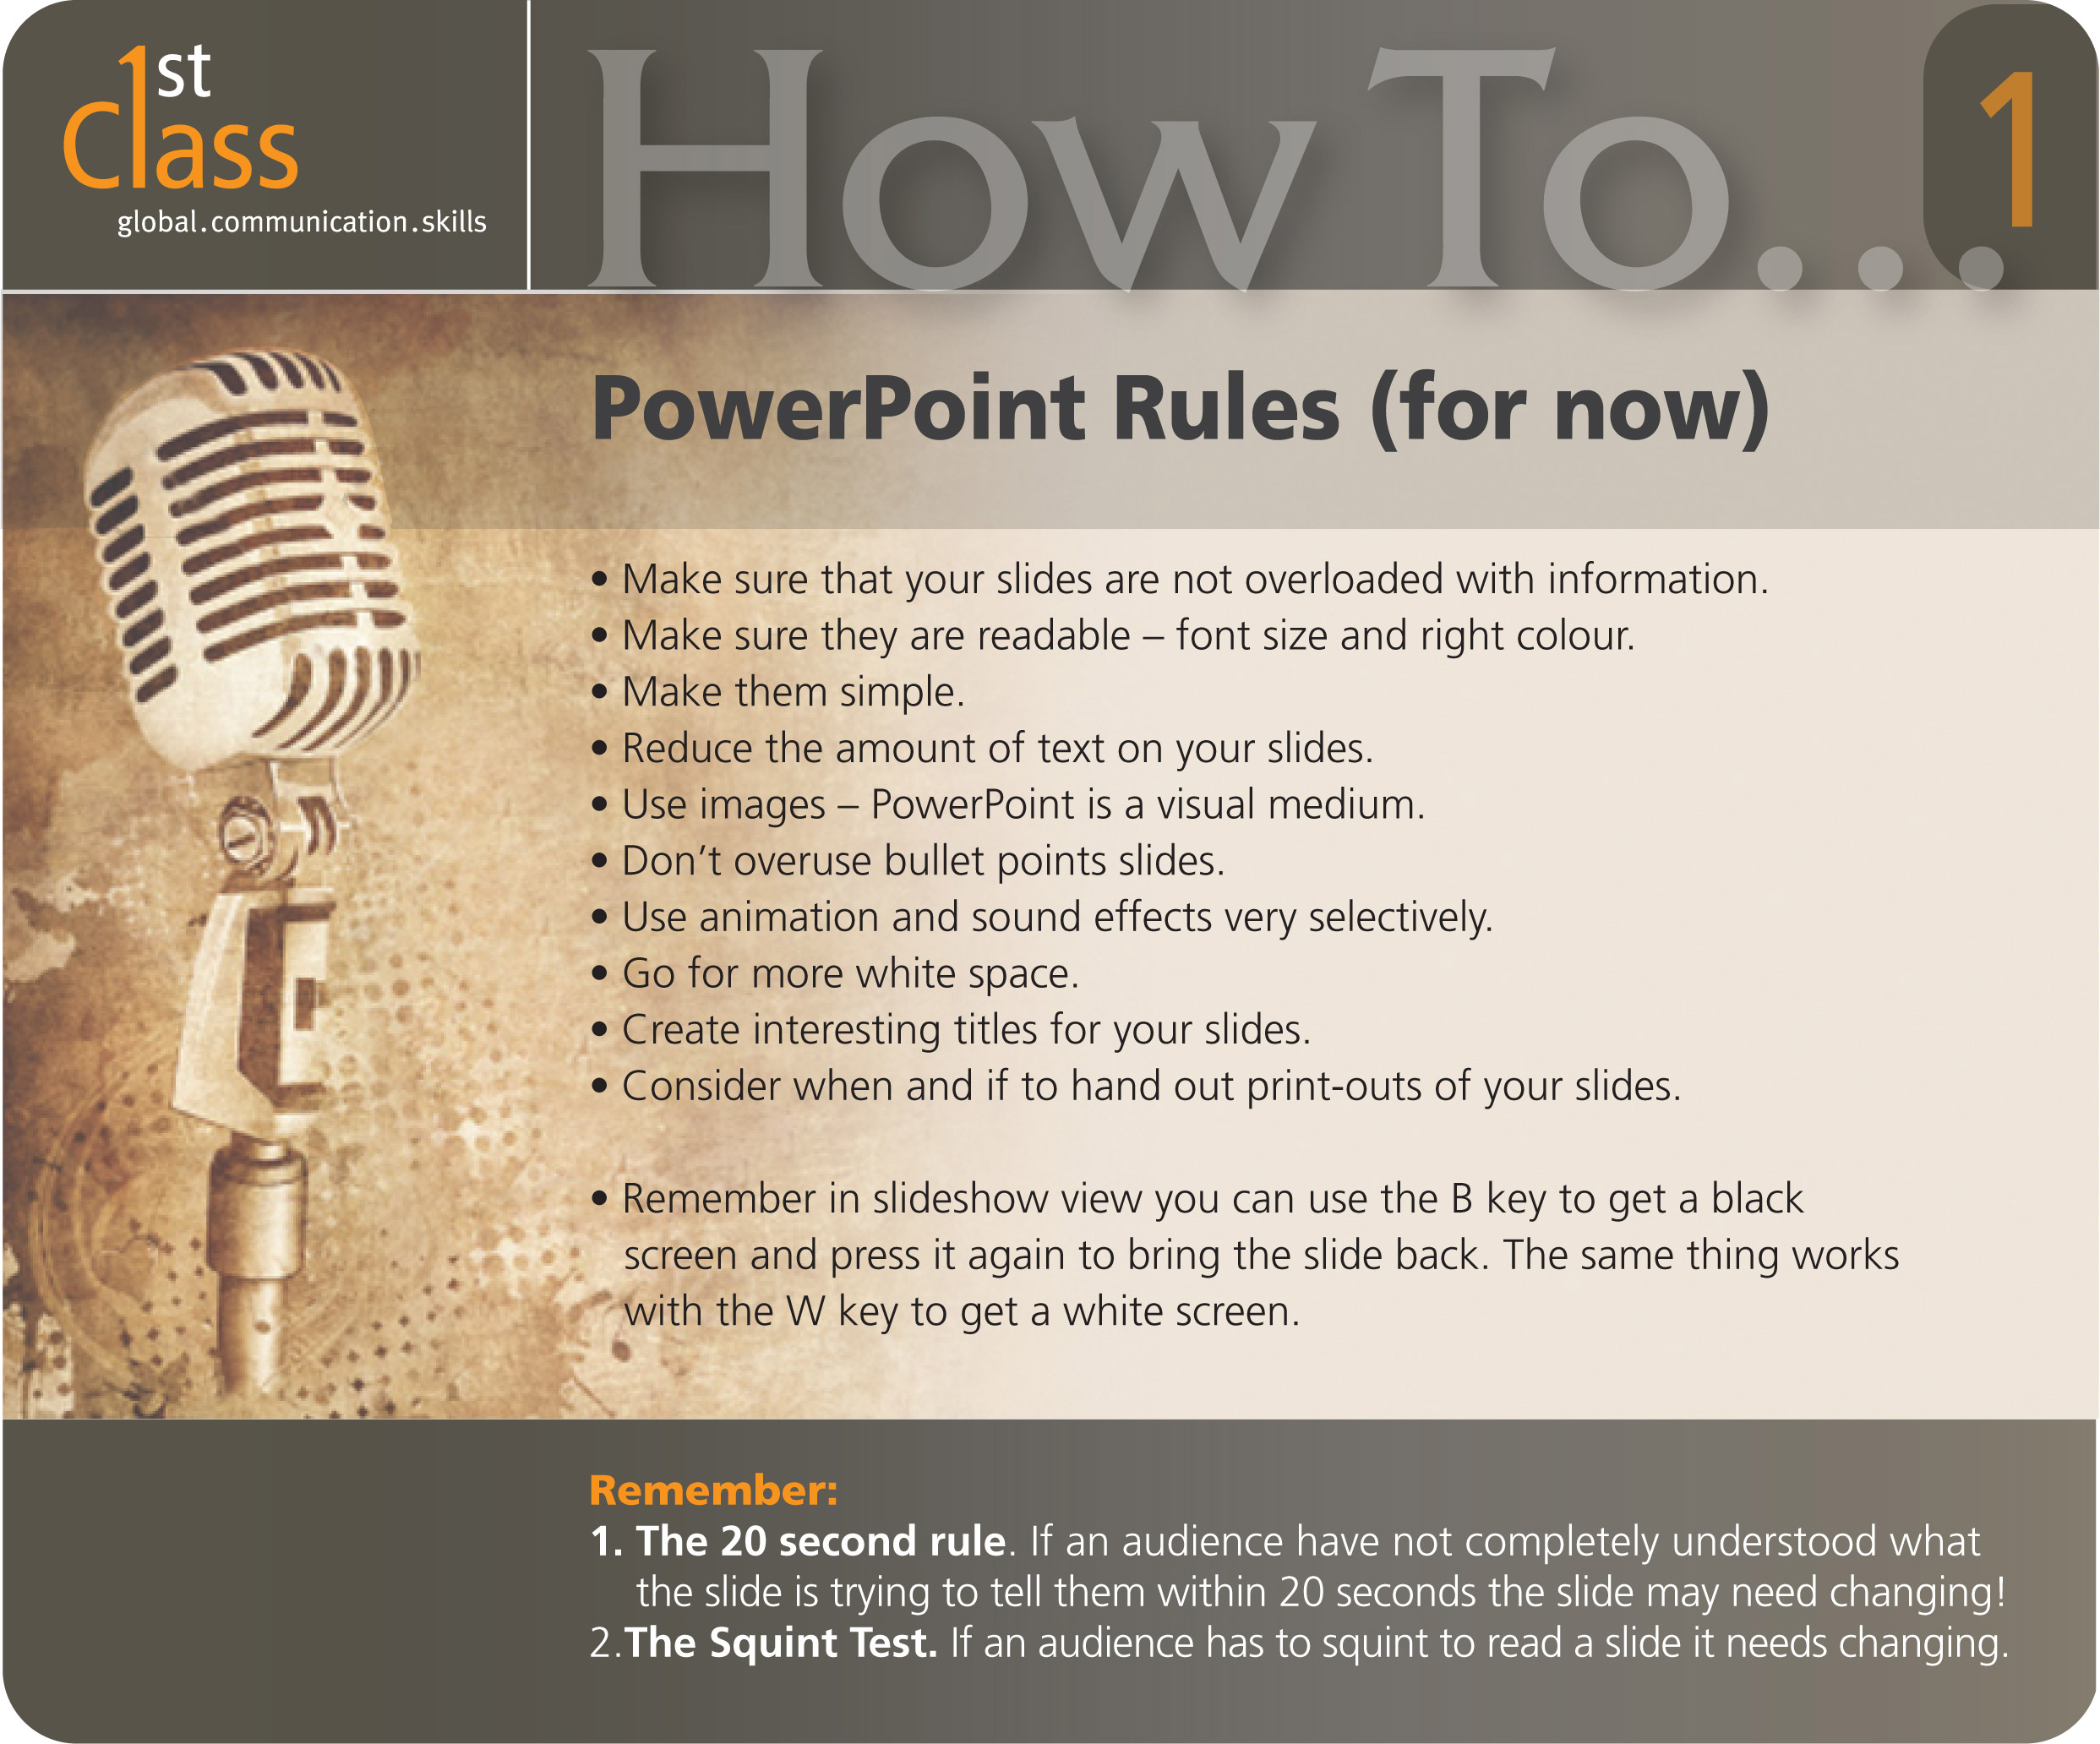 powerpoint rules